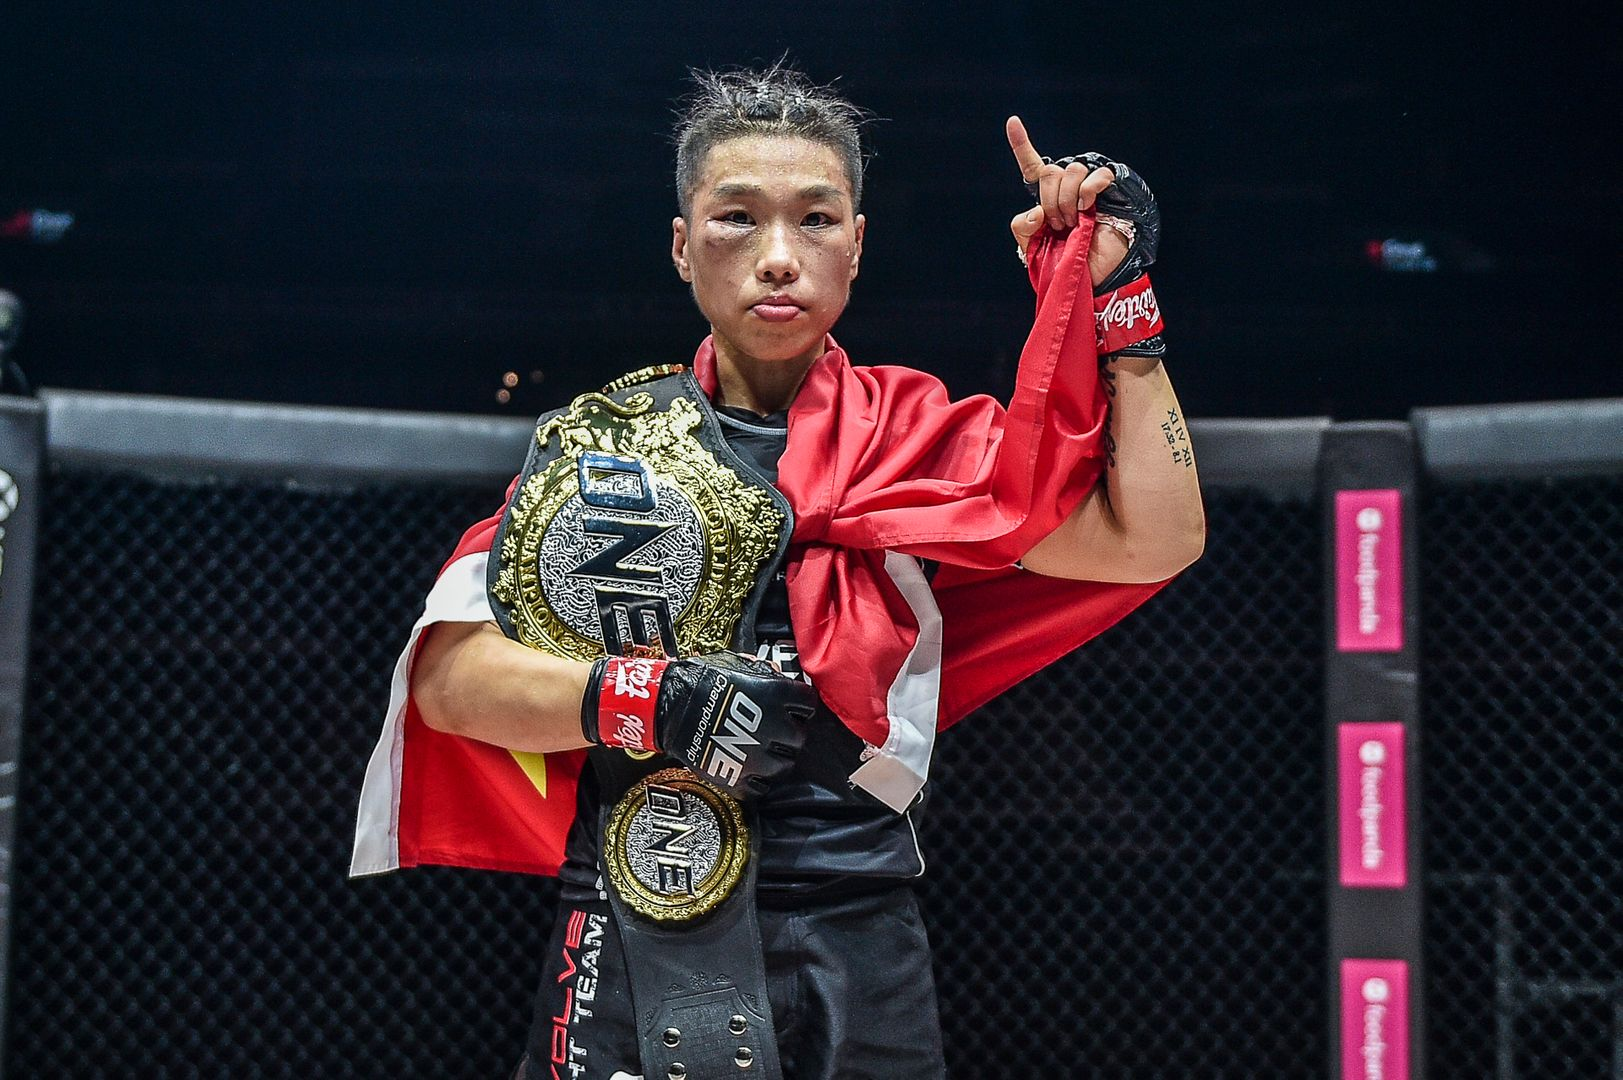 Xiong Jing Nan fights Tiffany Teo in a ONE Women's Strawweight World Title rematch at ONE: INSIDE THE MATRIX on Friday, 30 October